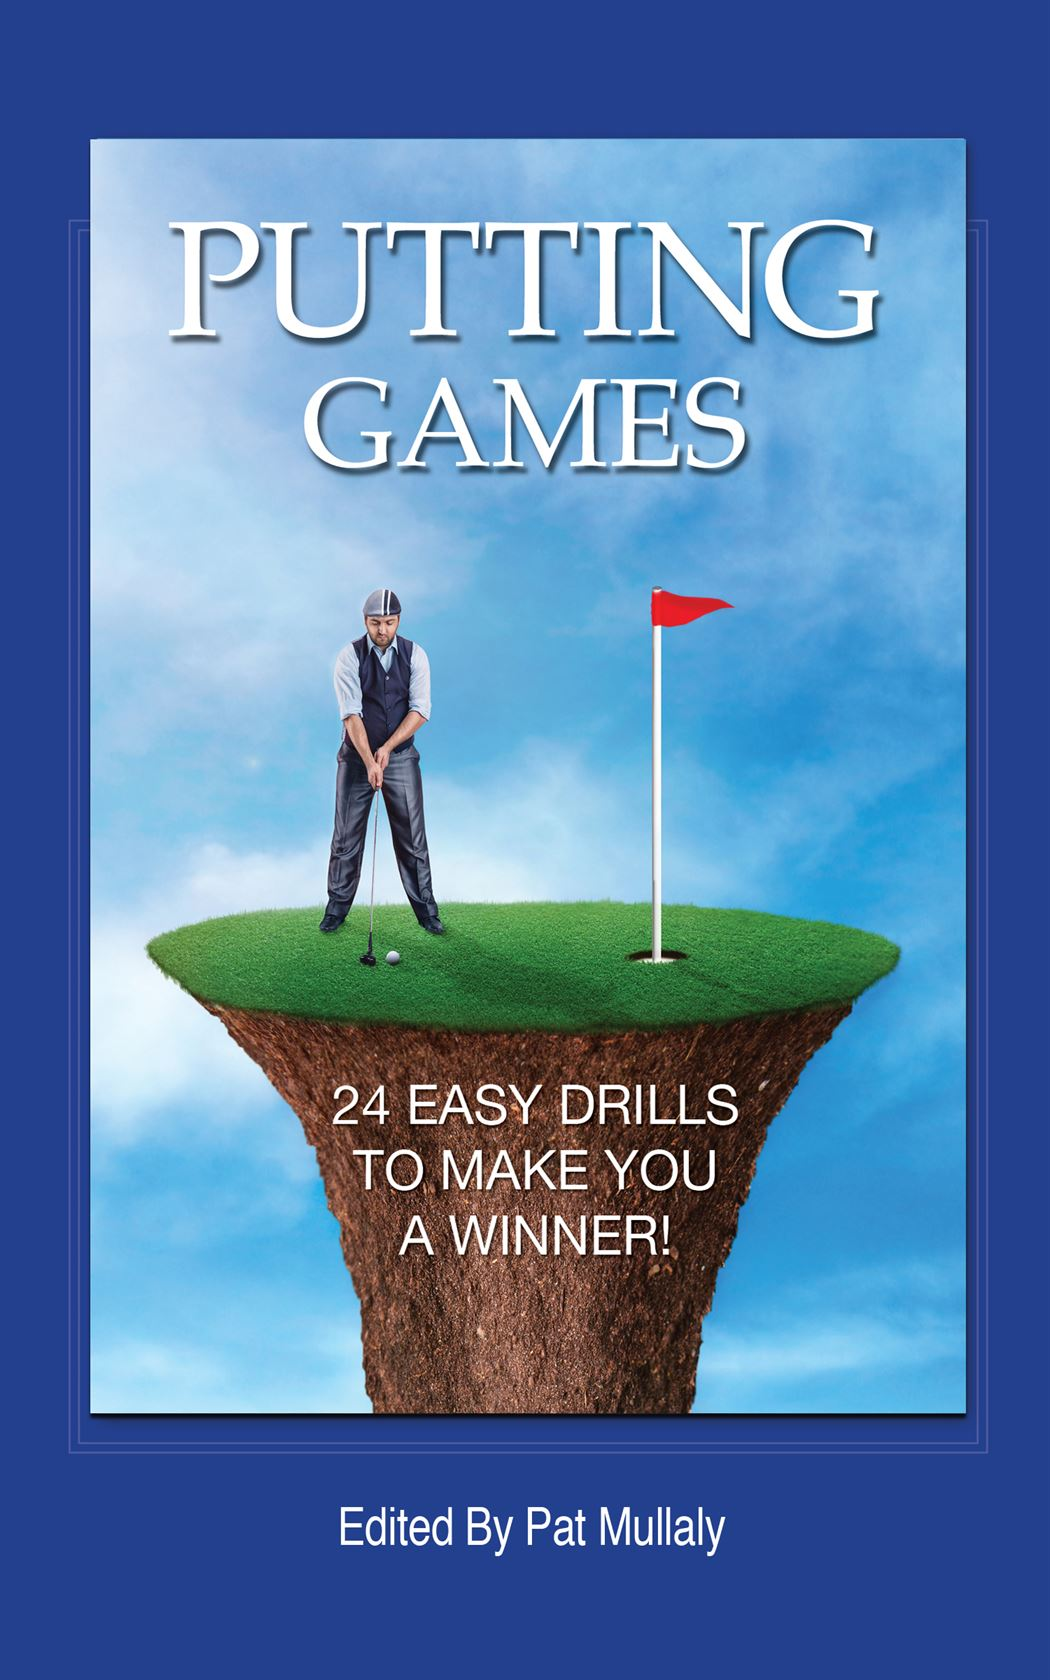 Putting Games: Easy Drills